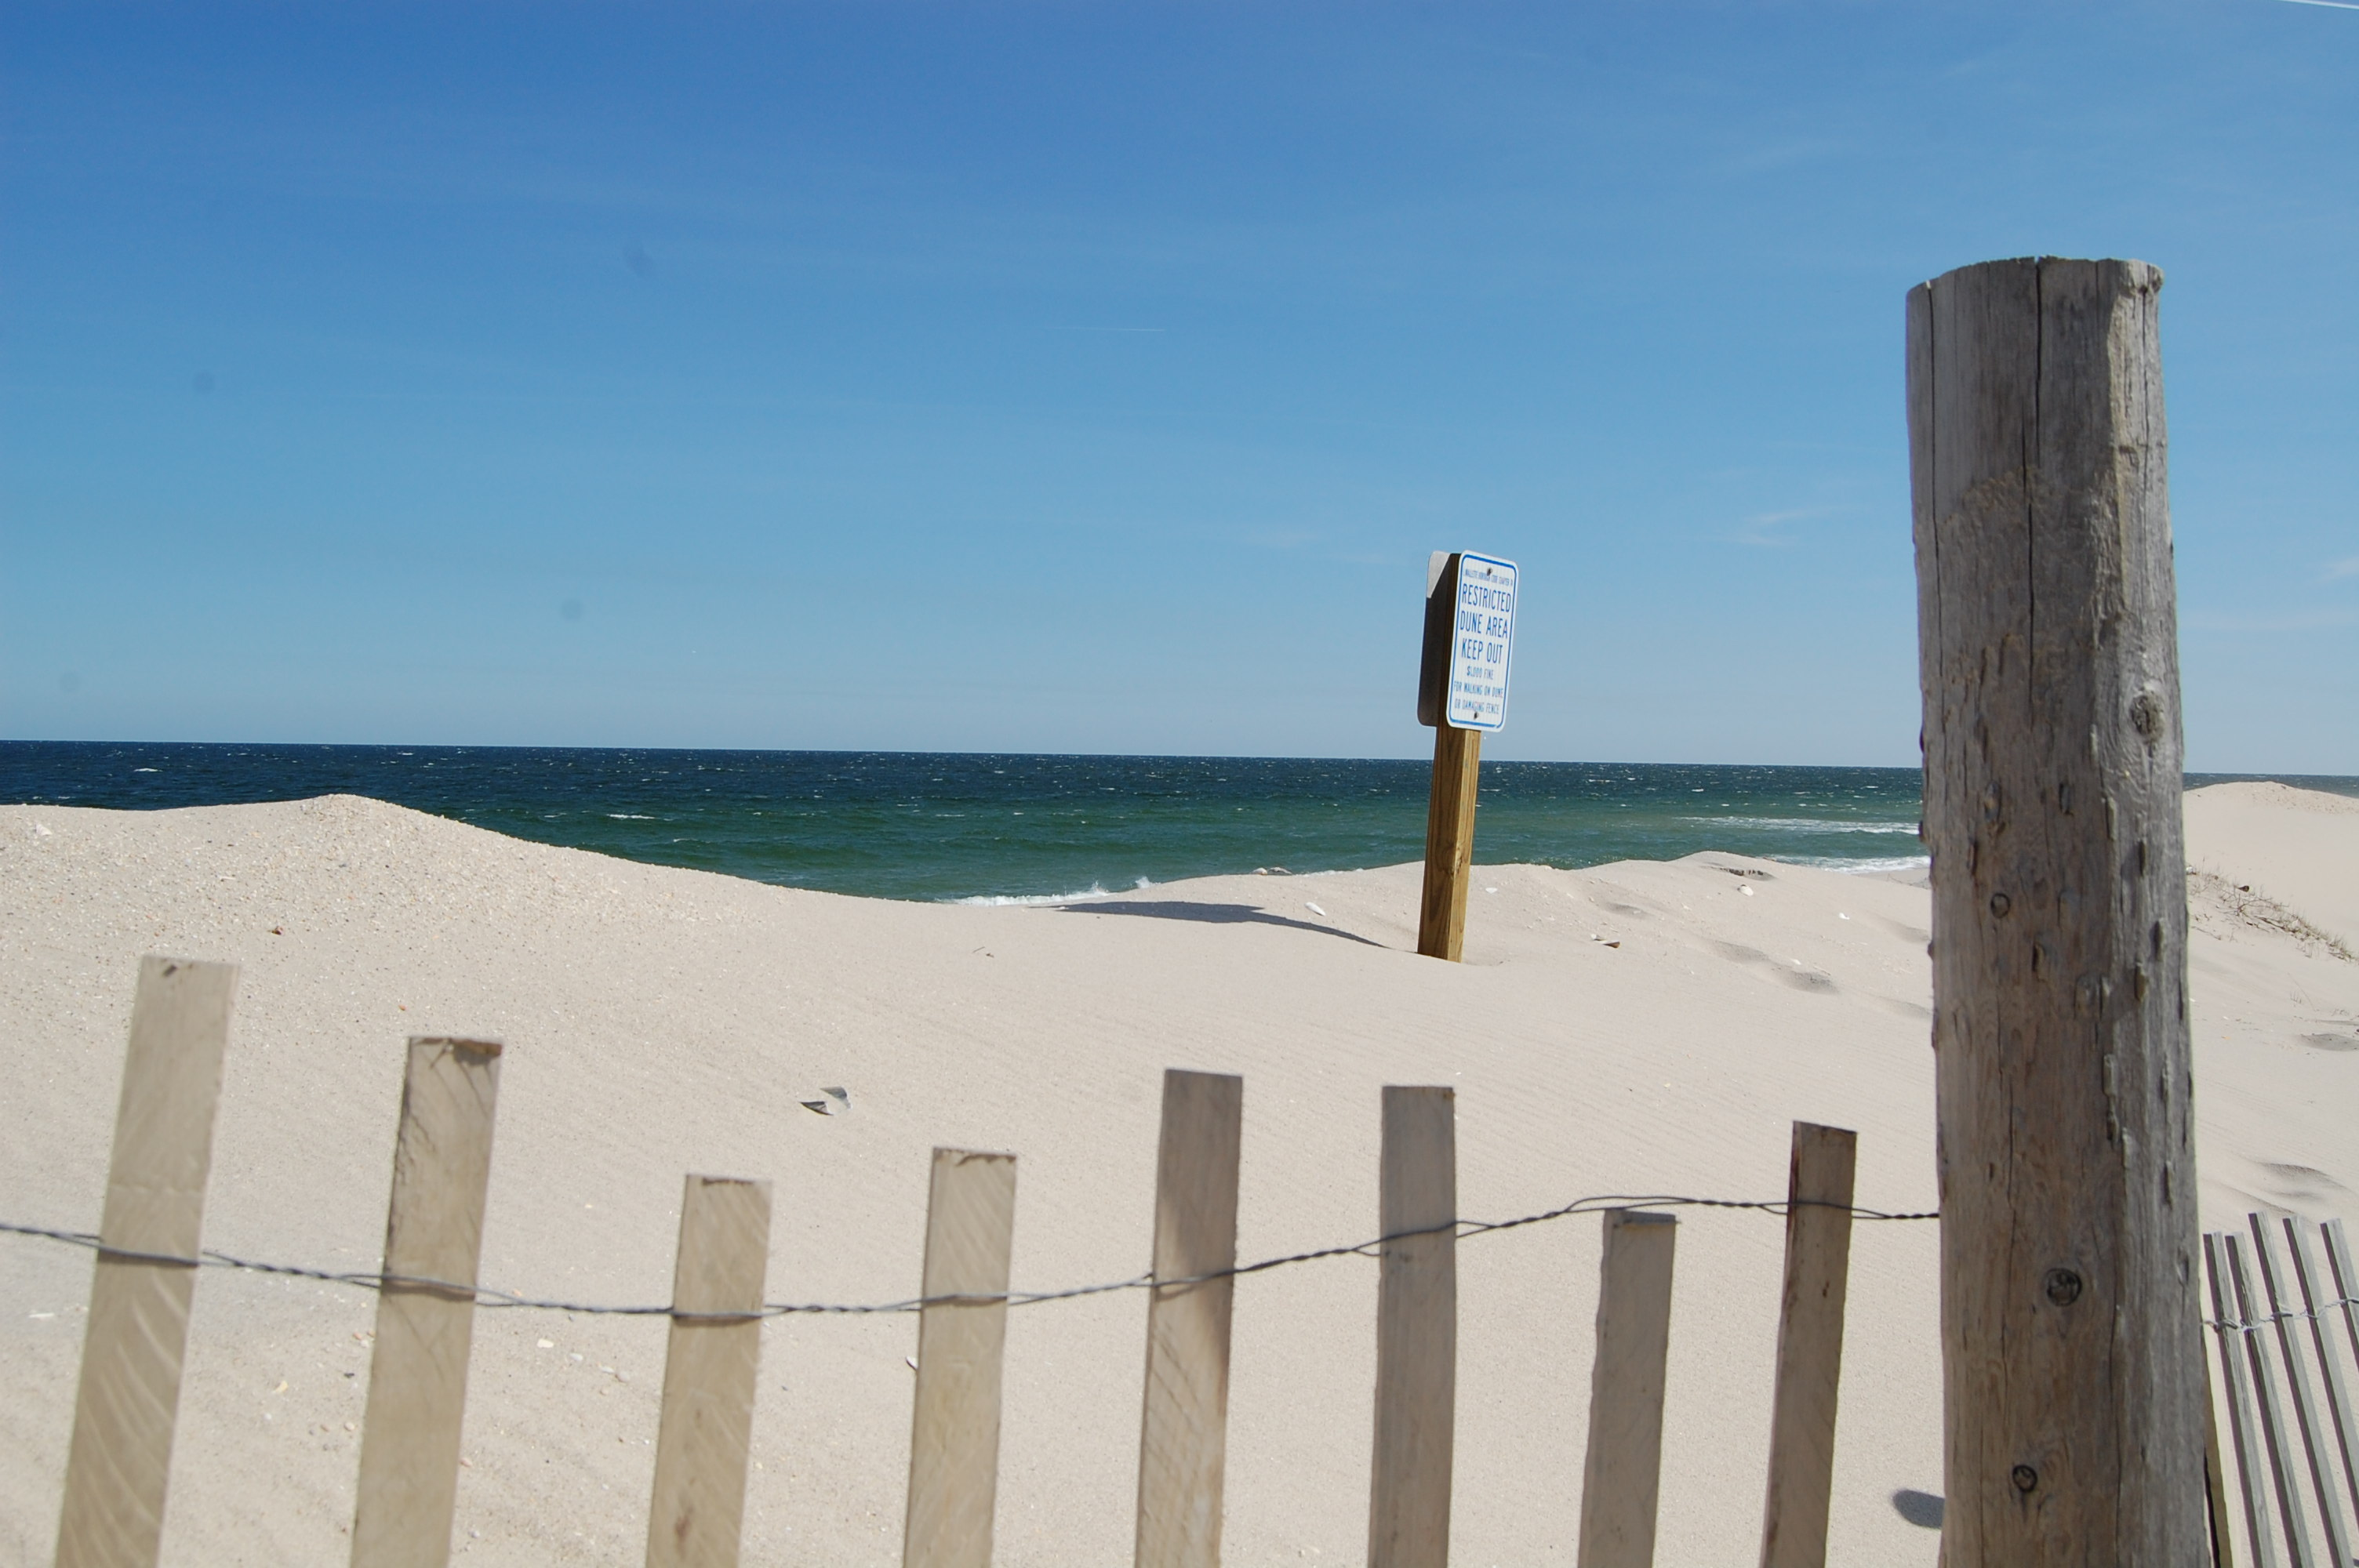 Dunes along Lavallette's beachfront. (Photo: Daniel Nee)